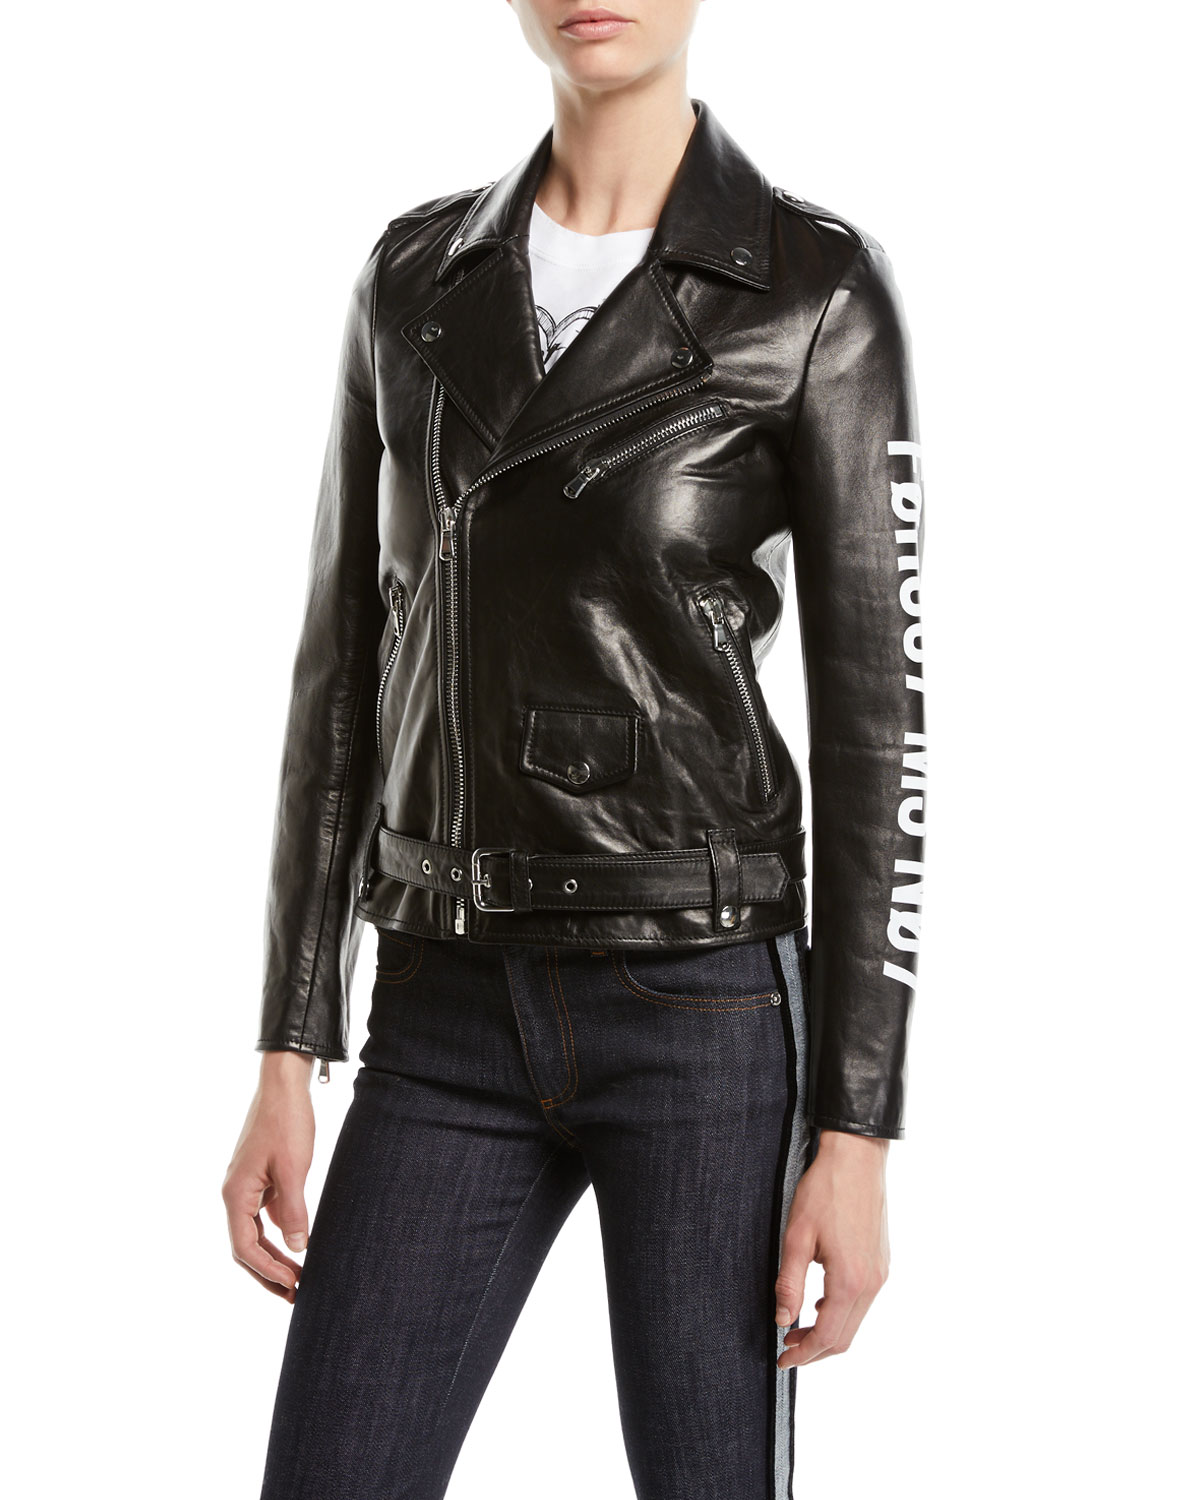 LEATHER MOTO JACKET W/ ENCRYPTED LOVE NOTE